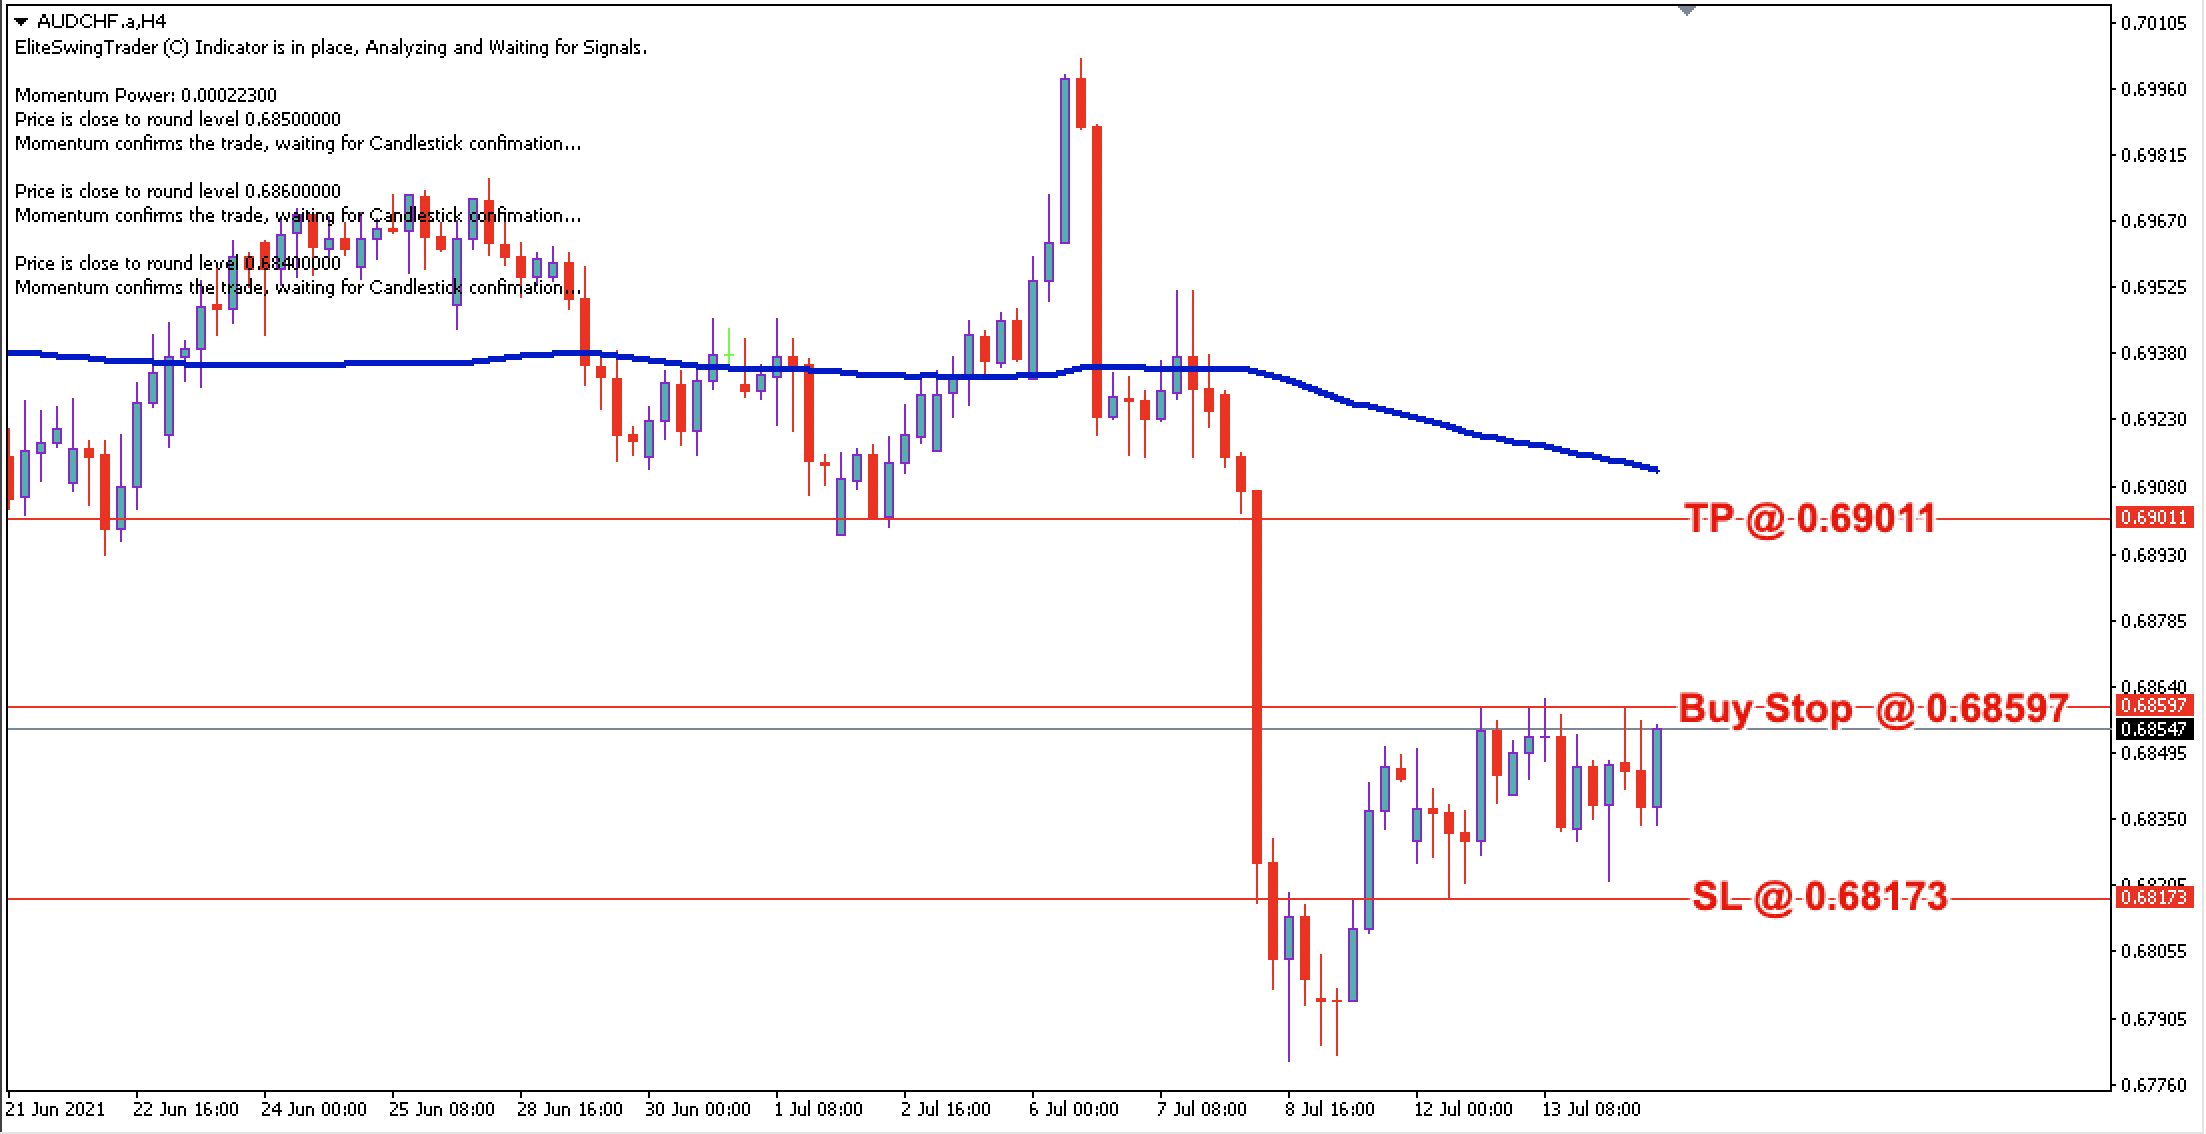 AUD/CHF Daily Price Forecast – 14th July 2021